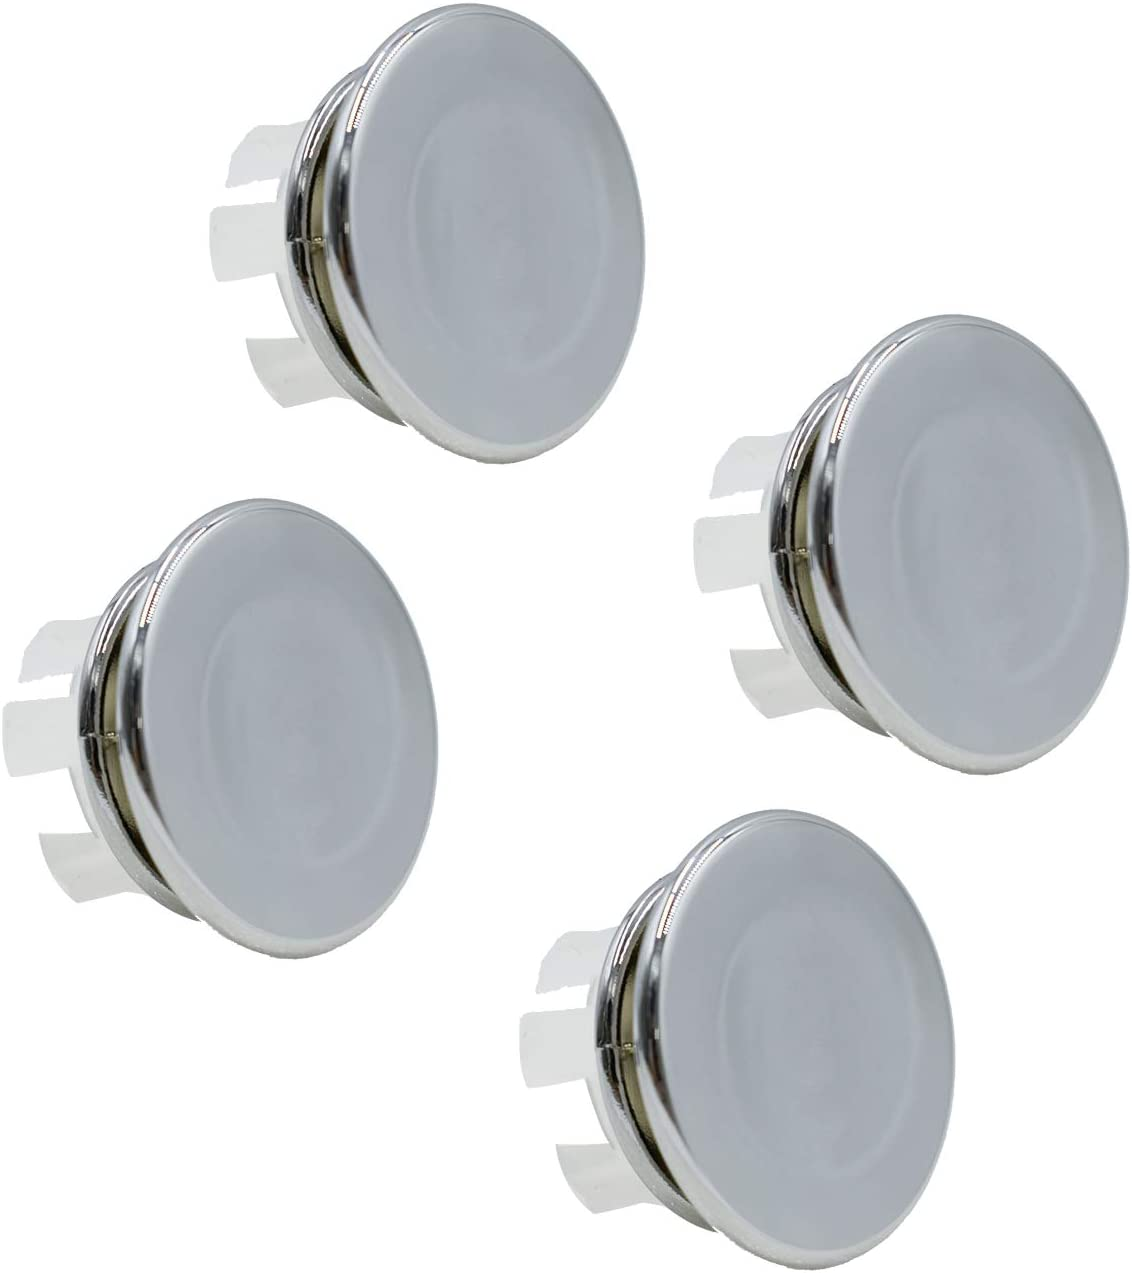 4 Pack Bathroom Basin Sink Max 77% OFF Round Chrome Tidy Overflow Trim 2021 autumn and winter new